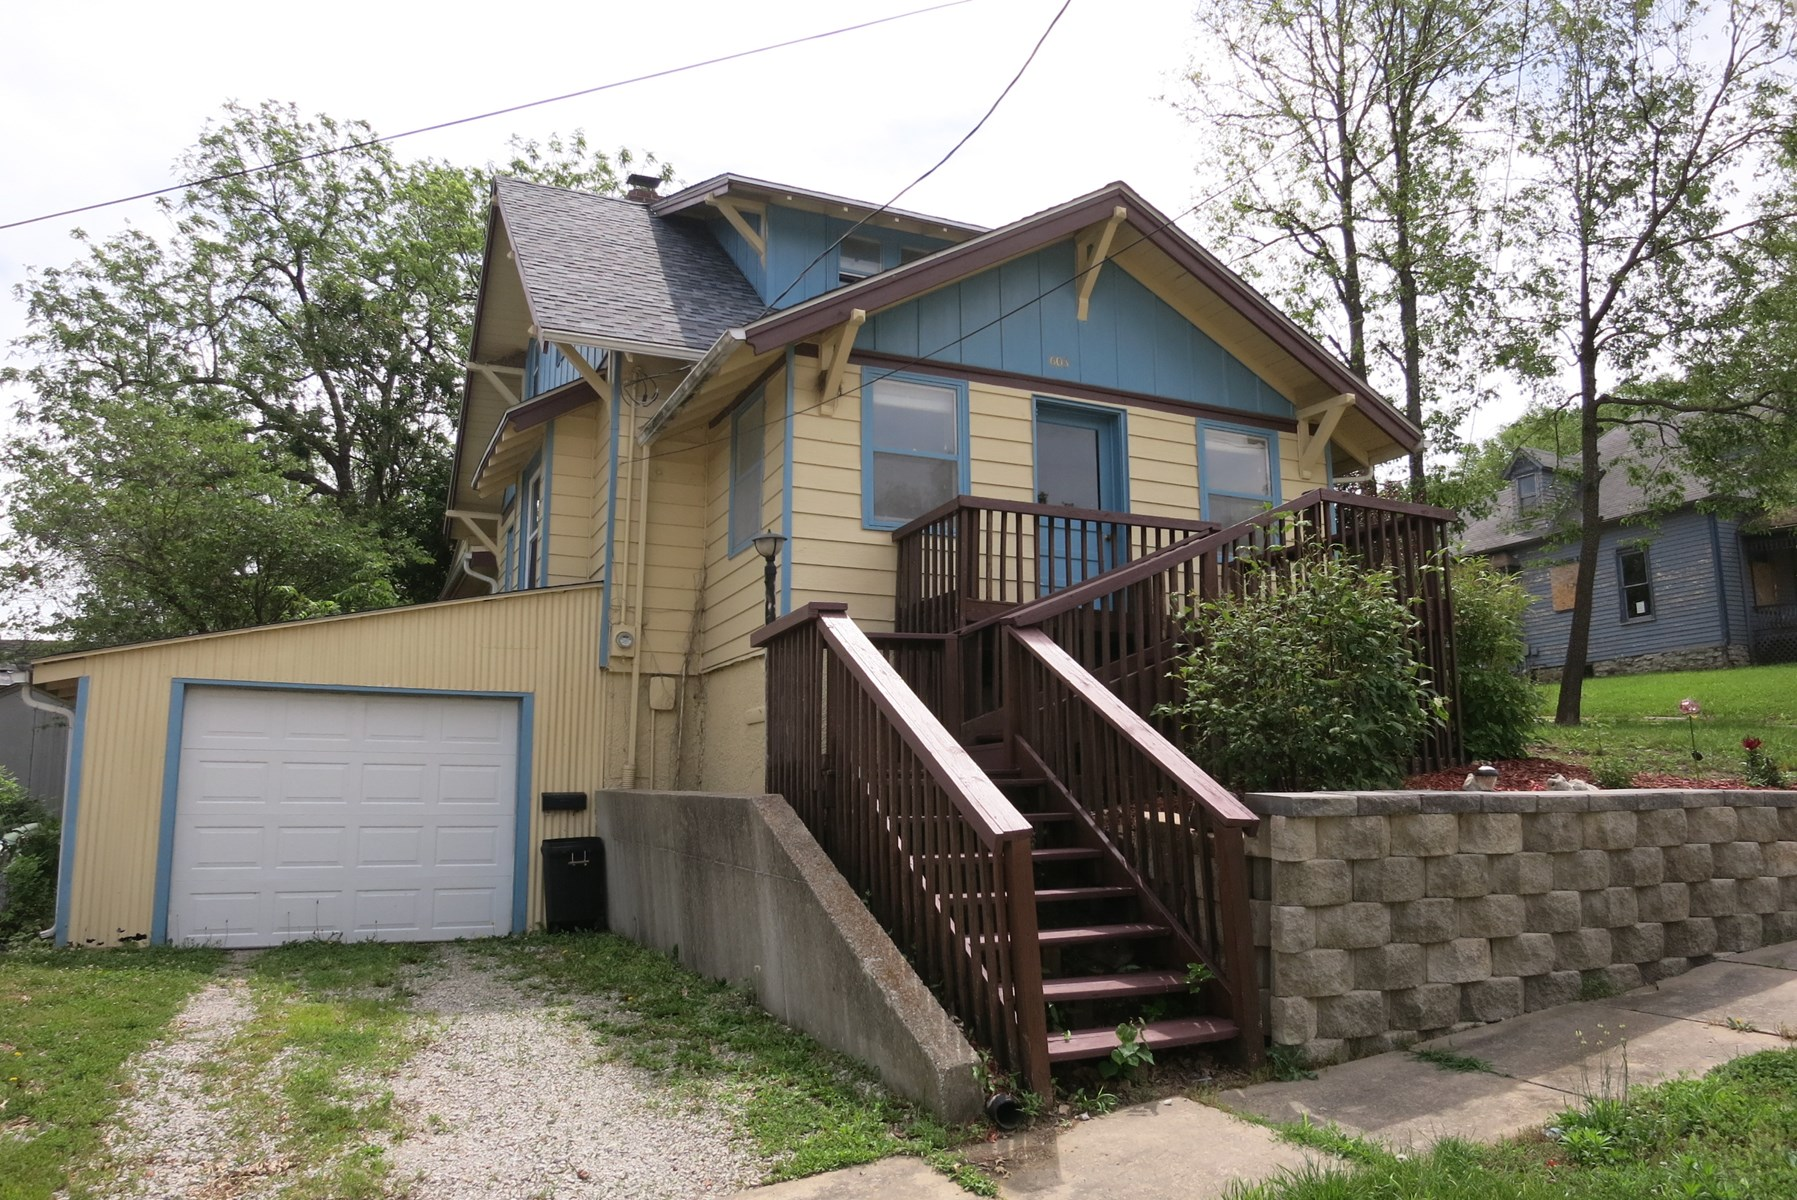 1 ½ Story Home For Sale in Bethany Missouri